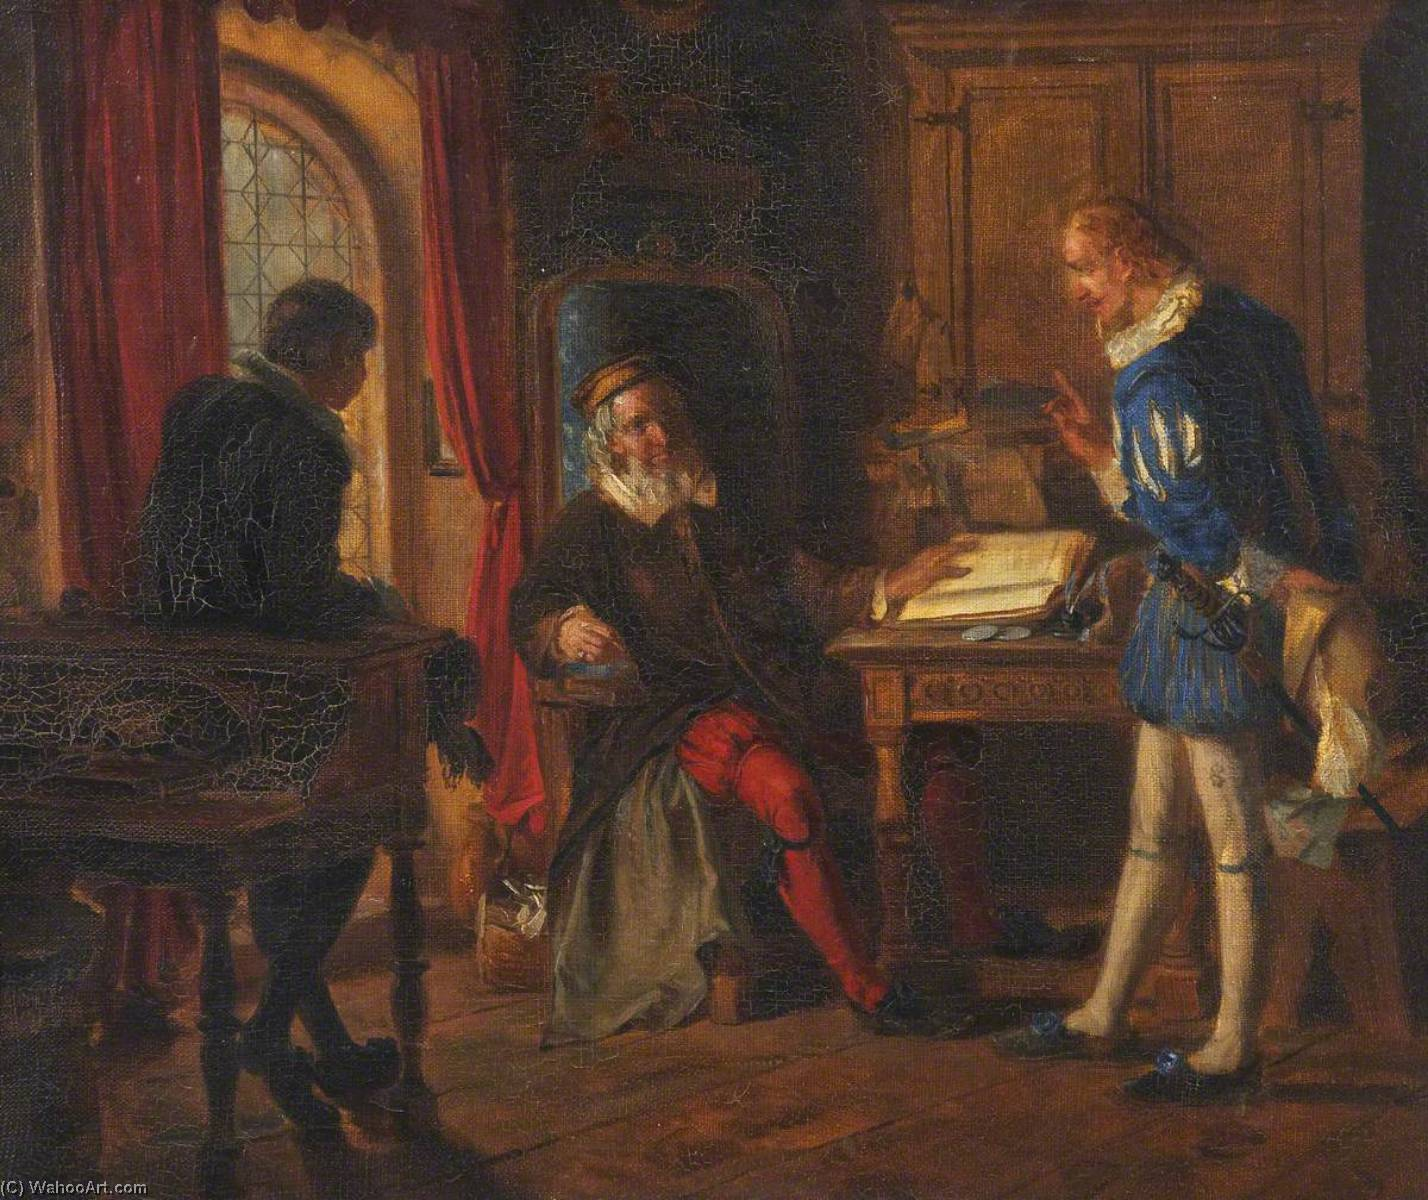 Scene from Gil Blas, Oil On Canvas by Thomas Stuart Smith